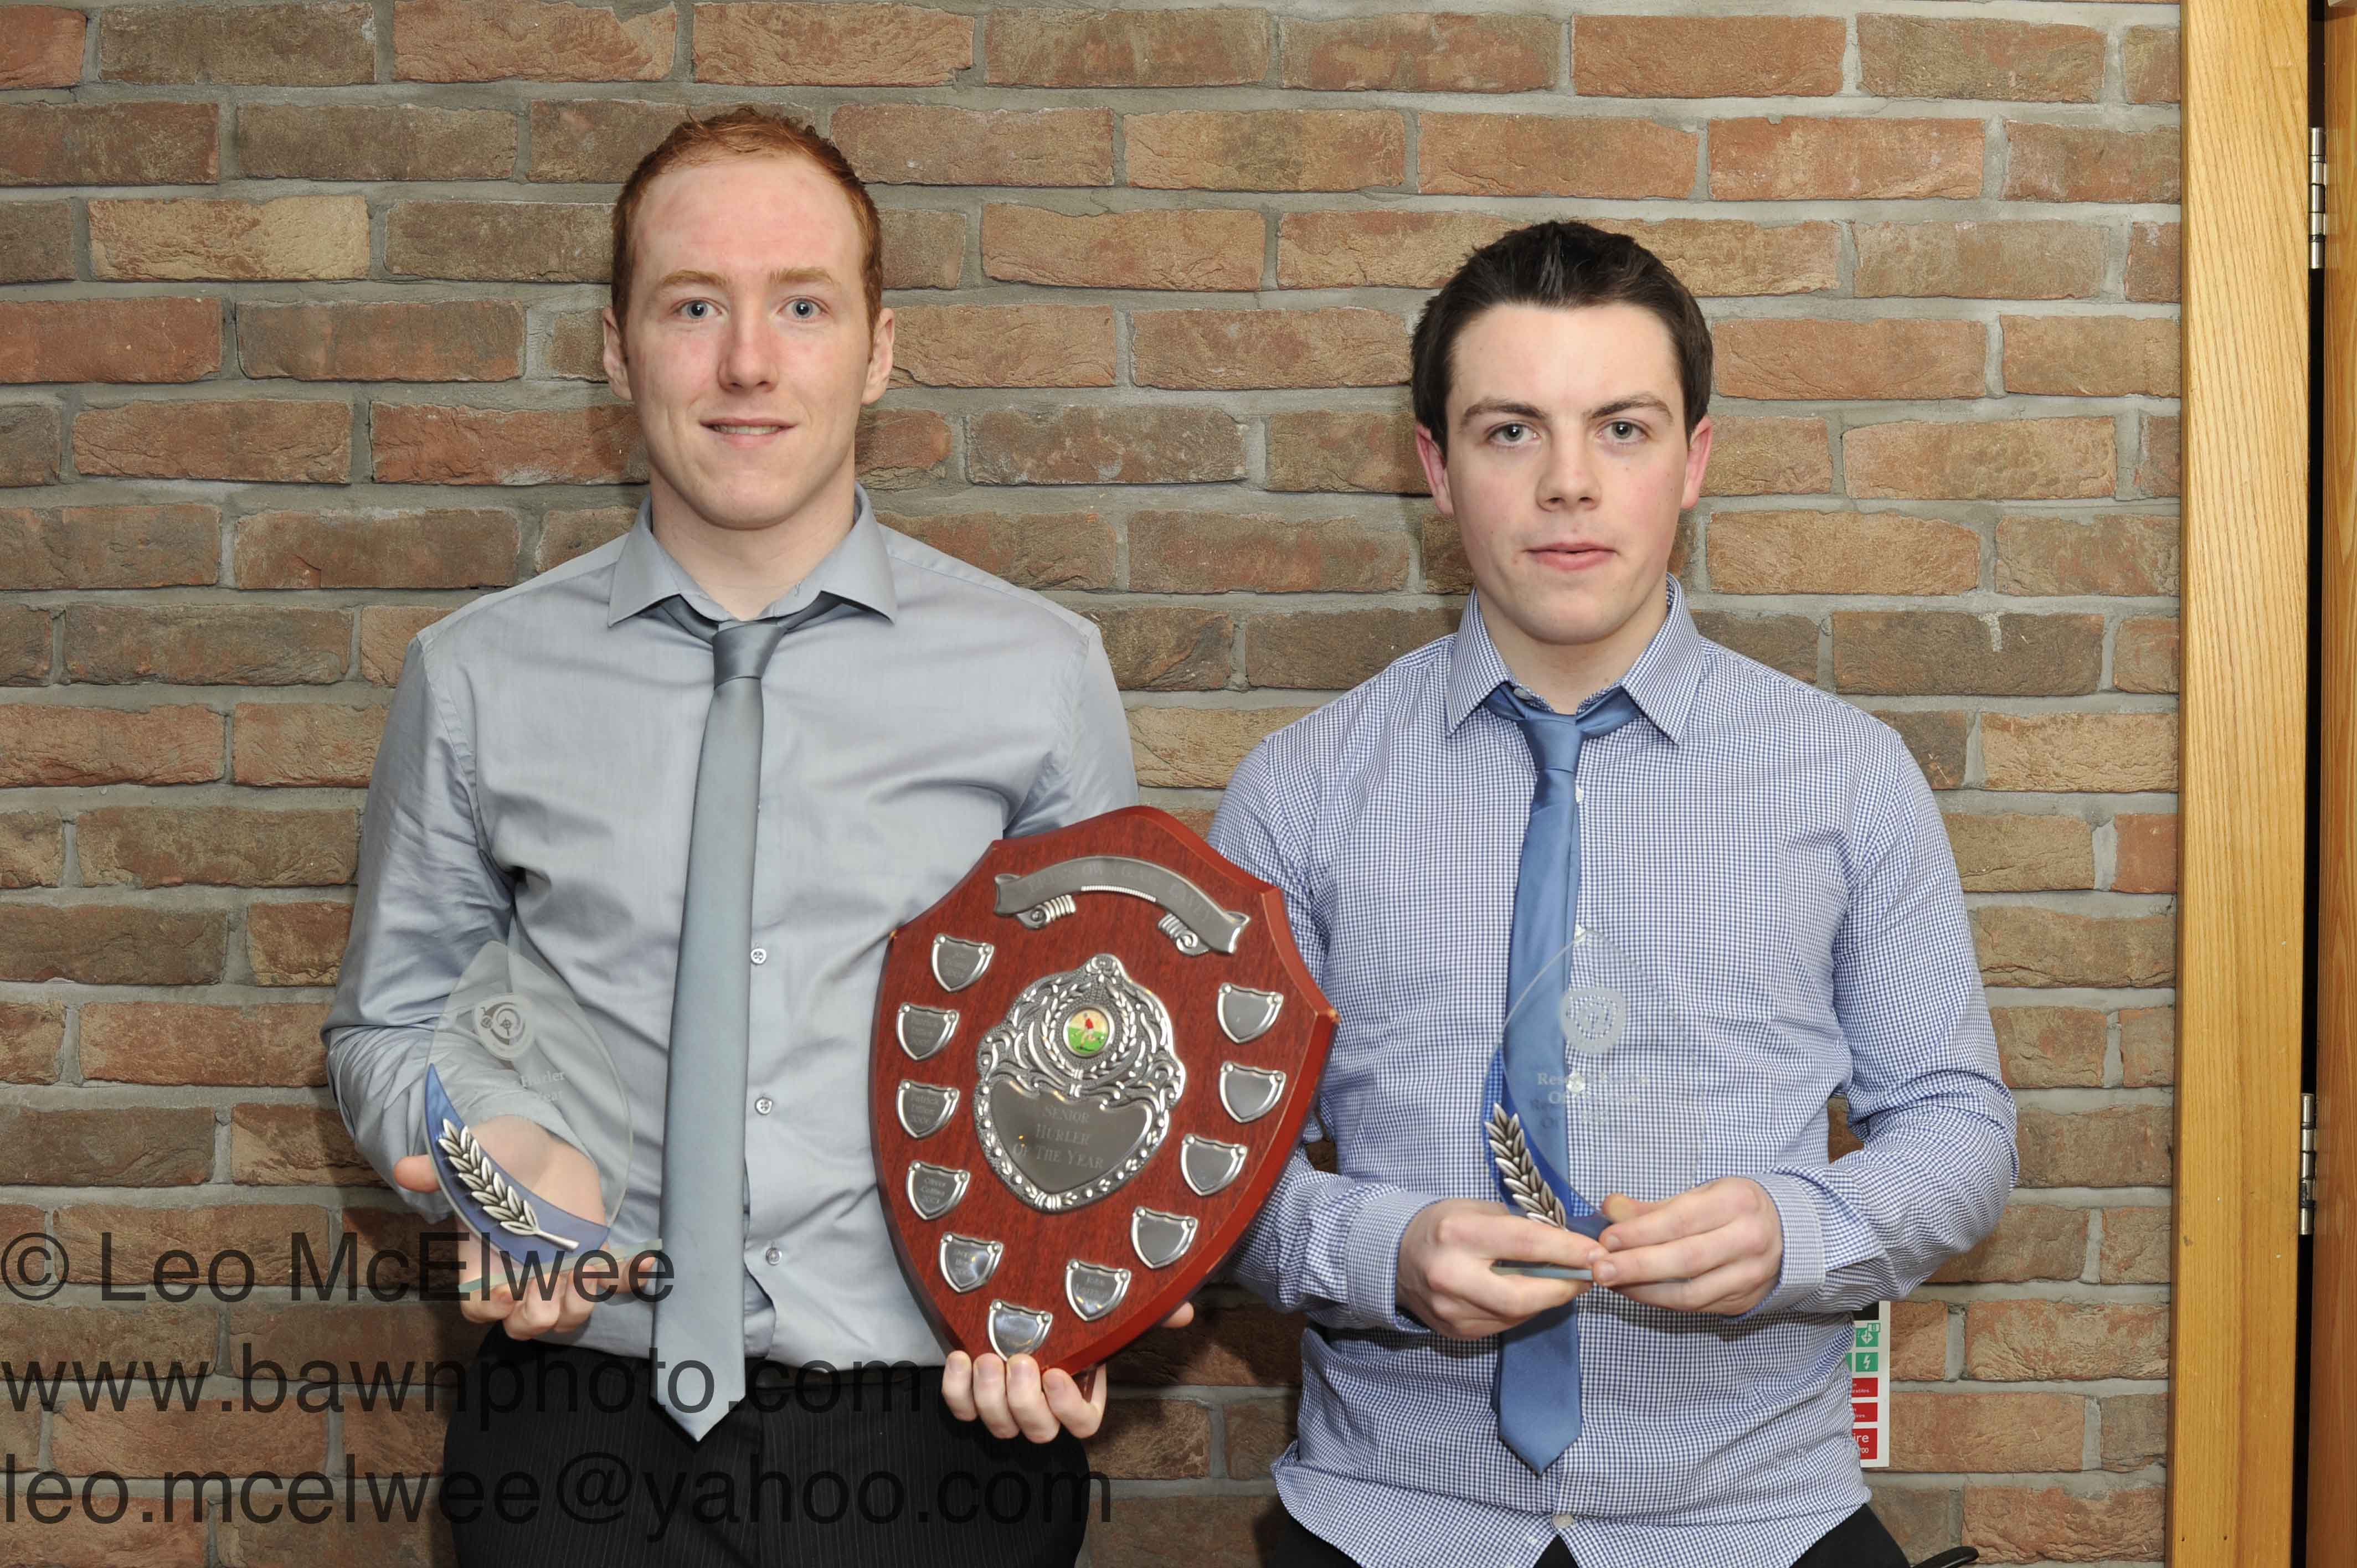 John Darragh (left)was presented with the Senior Hurler of the Year award for the second year in a row while Sean Toner was presented with the Intermediate Hurler of the Year award.